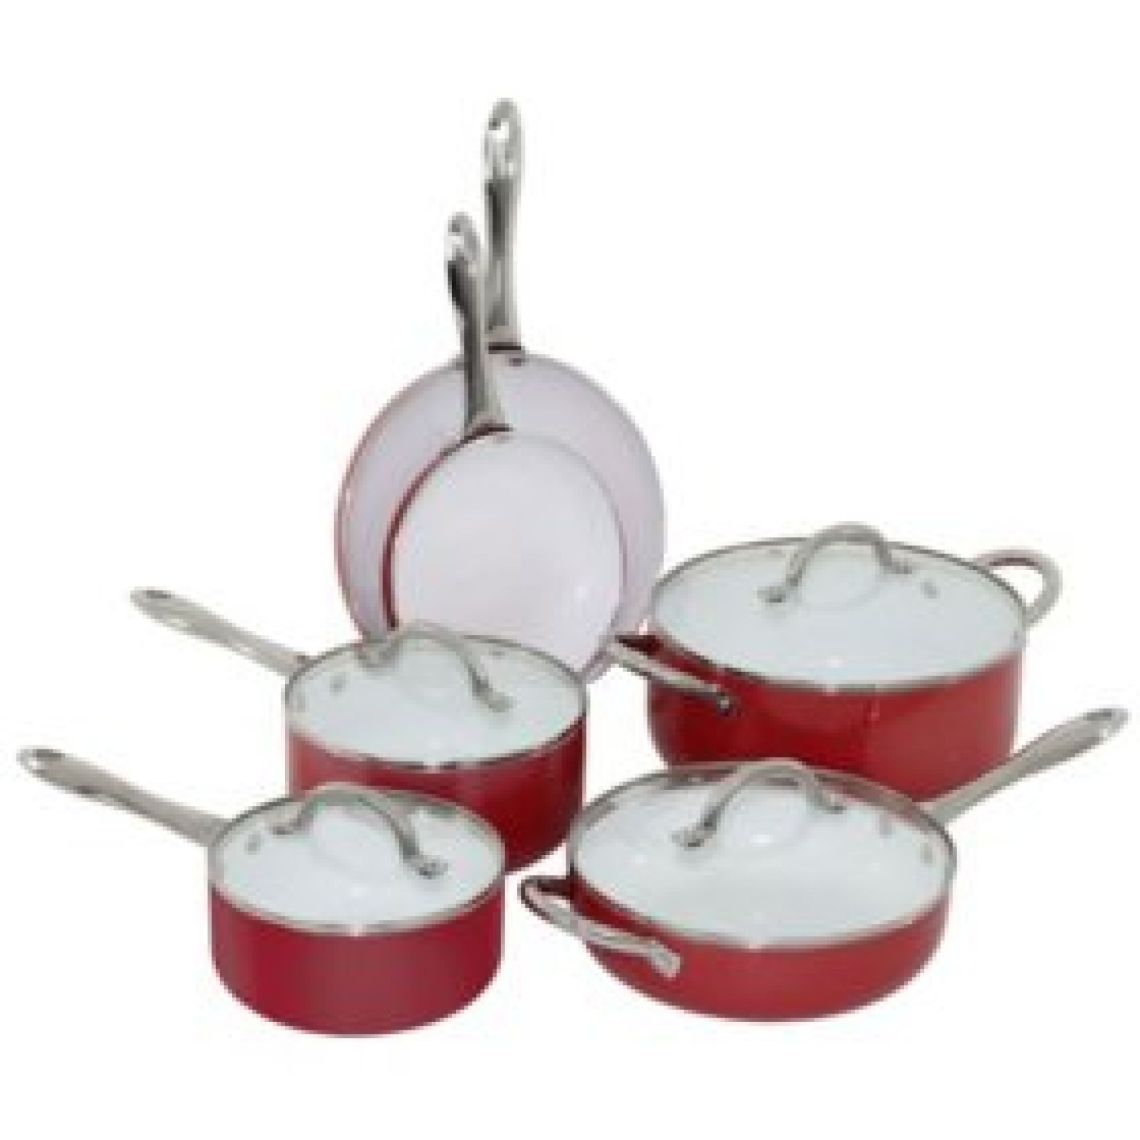 Oneida 10-Piece Aluminum Cookware Set (Various Colors) - Sam's Club